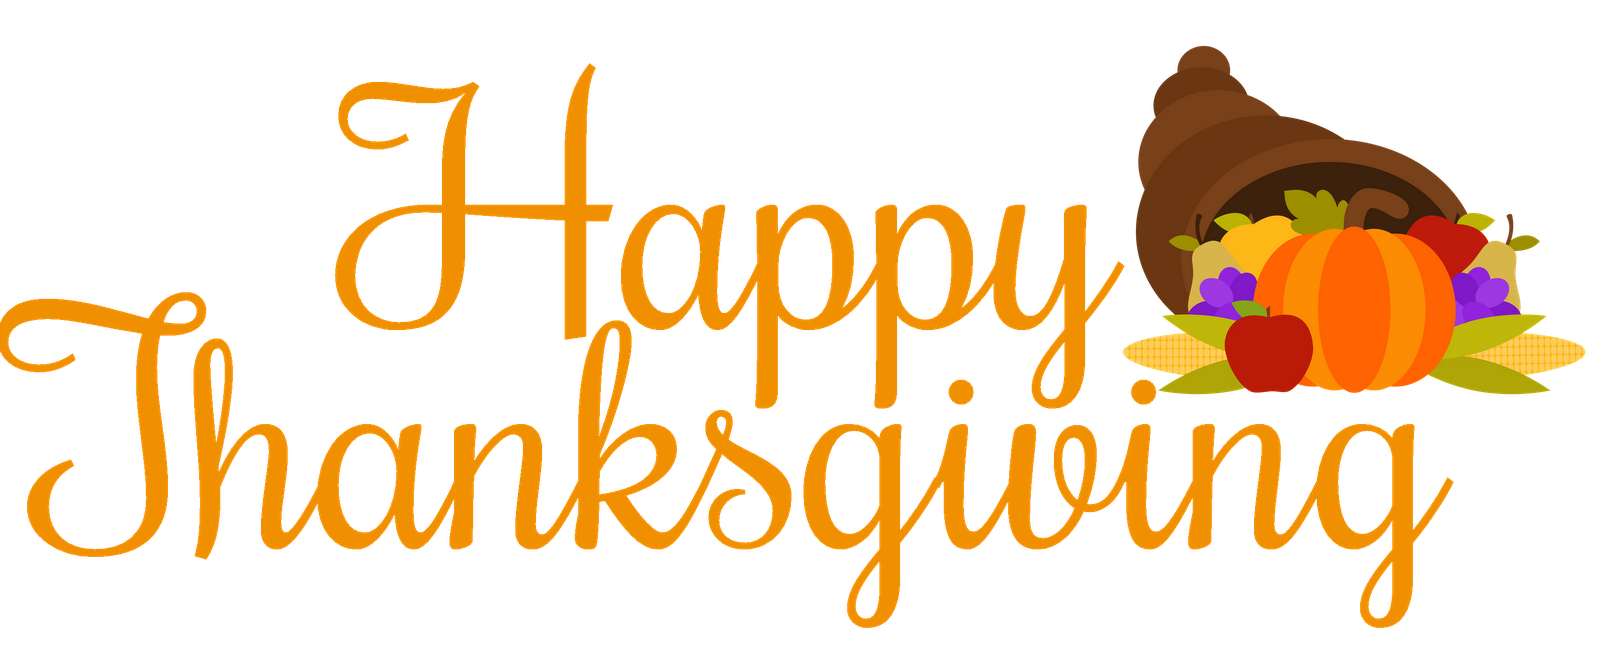 http://austinalpha.com/wp-content/uploads/2014/11/Happy-Thanksgiving-from-The-Twinery.png